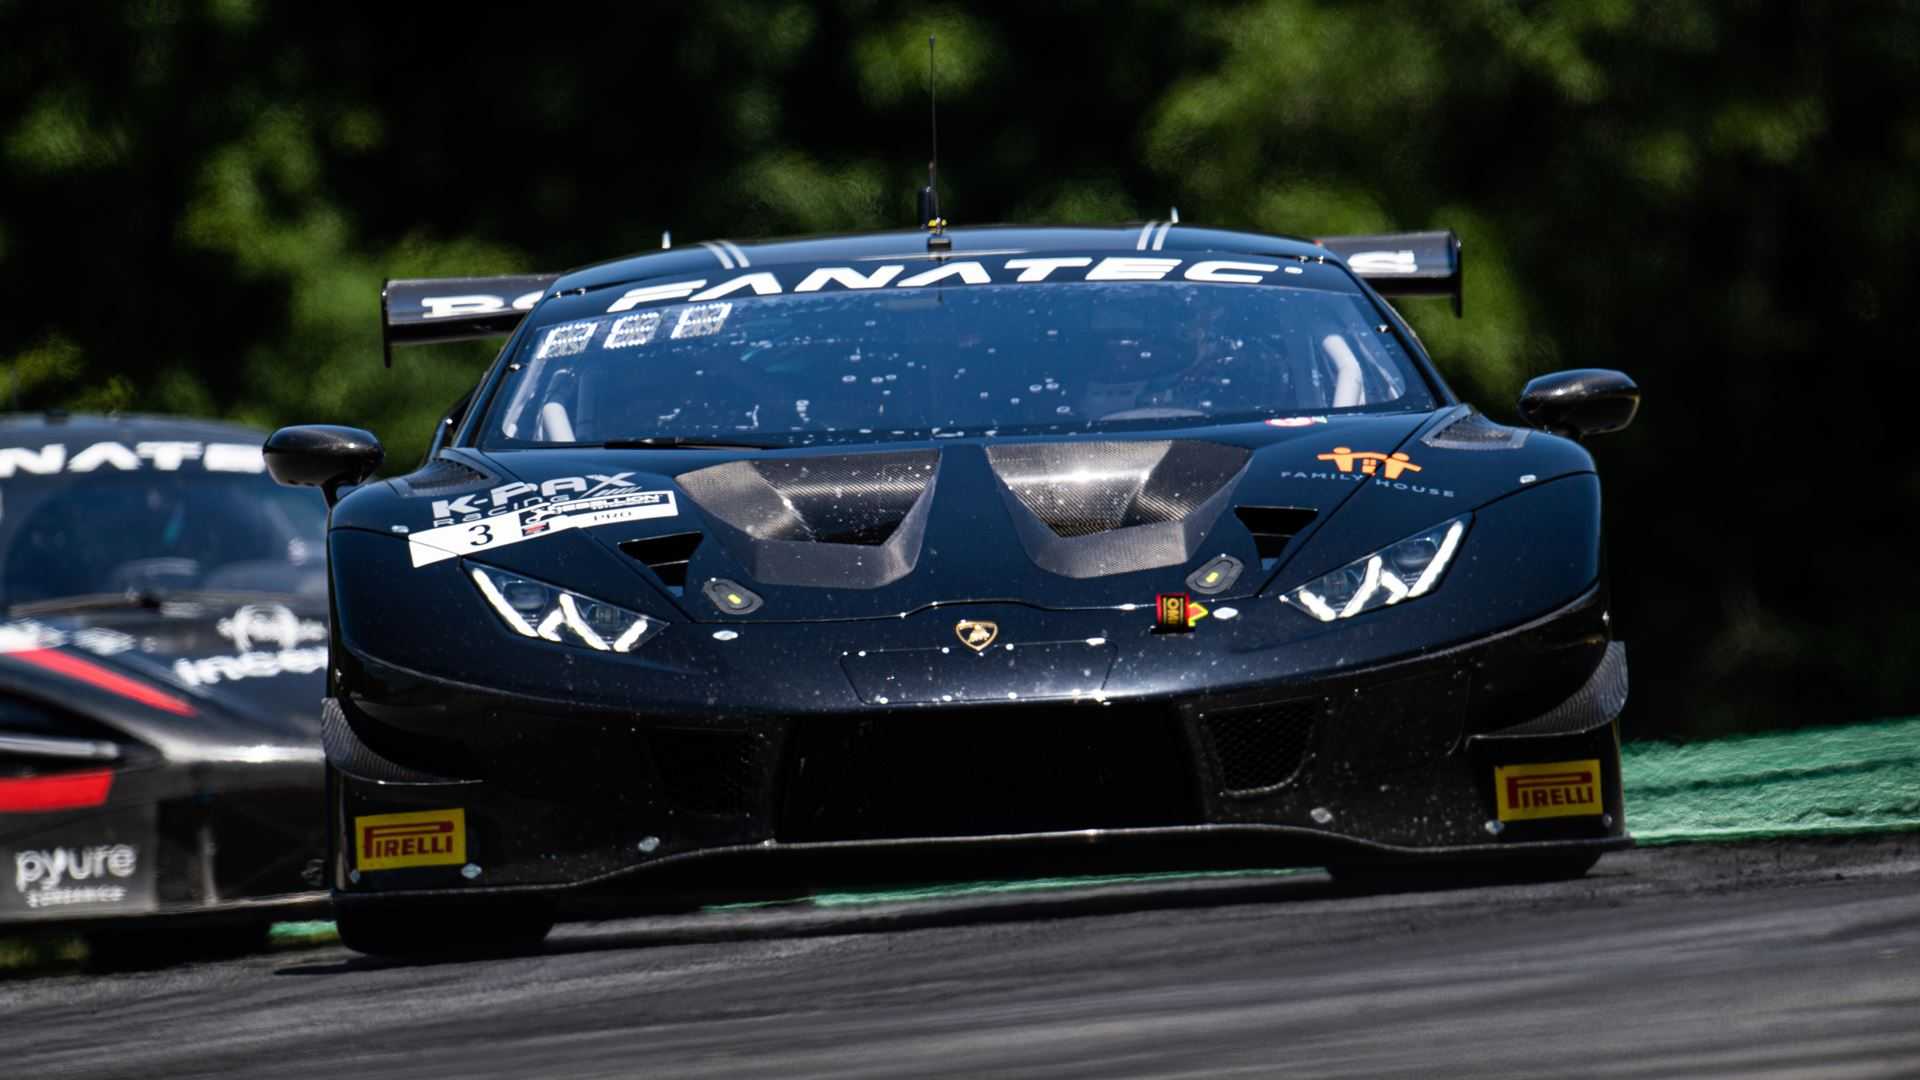 Lamborghini makes history with 100th GT3 victory thanks to another GT World Challenge America success - Image 5